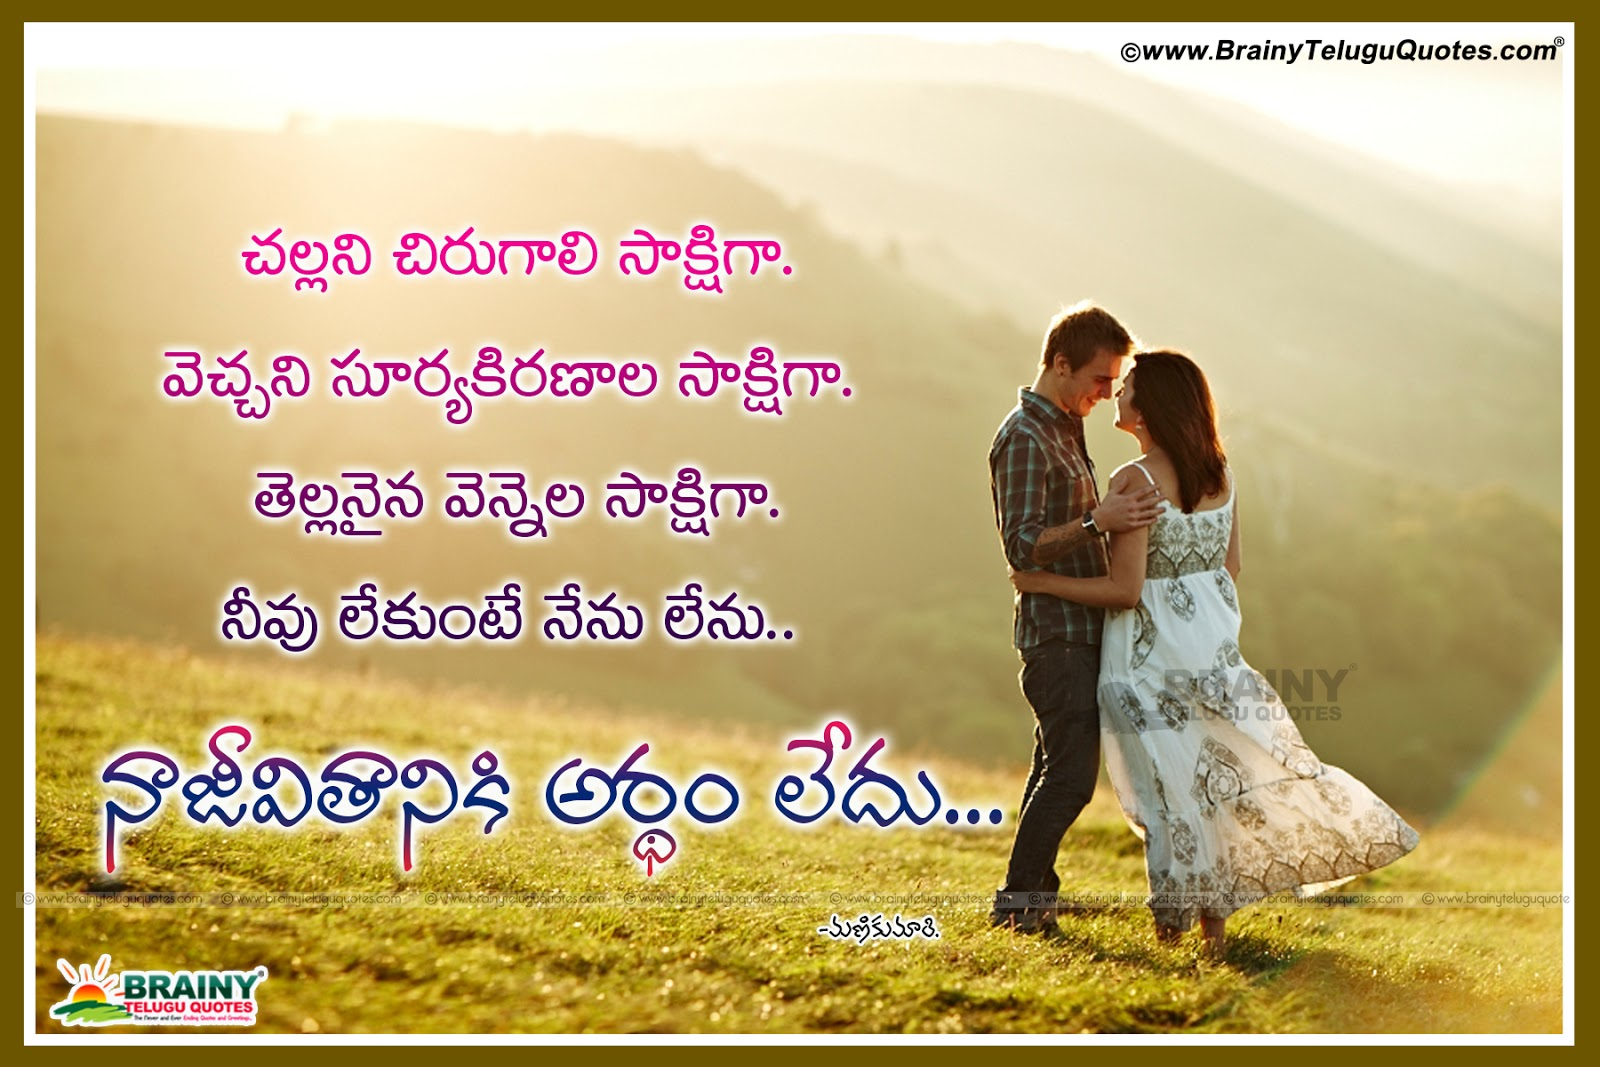 Telugu Comedy Wallpapers With Quotes: Romantic Telugu Love Quotes With Cute Couple Hd Wallpaper